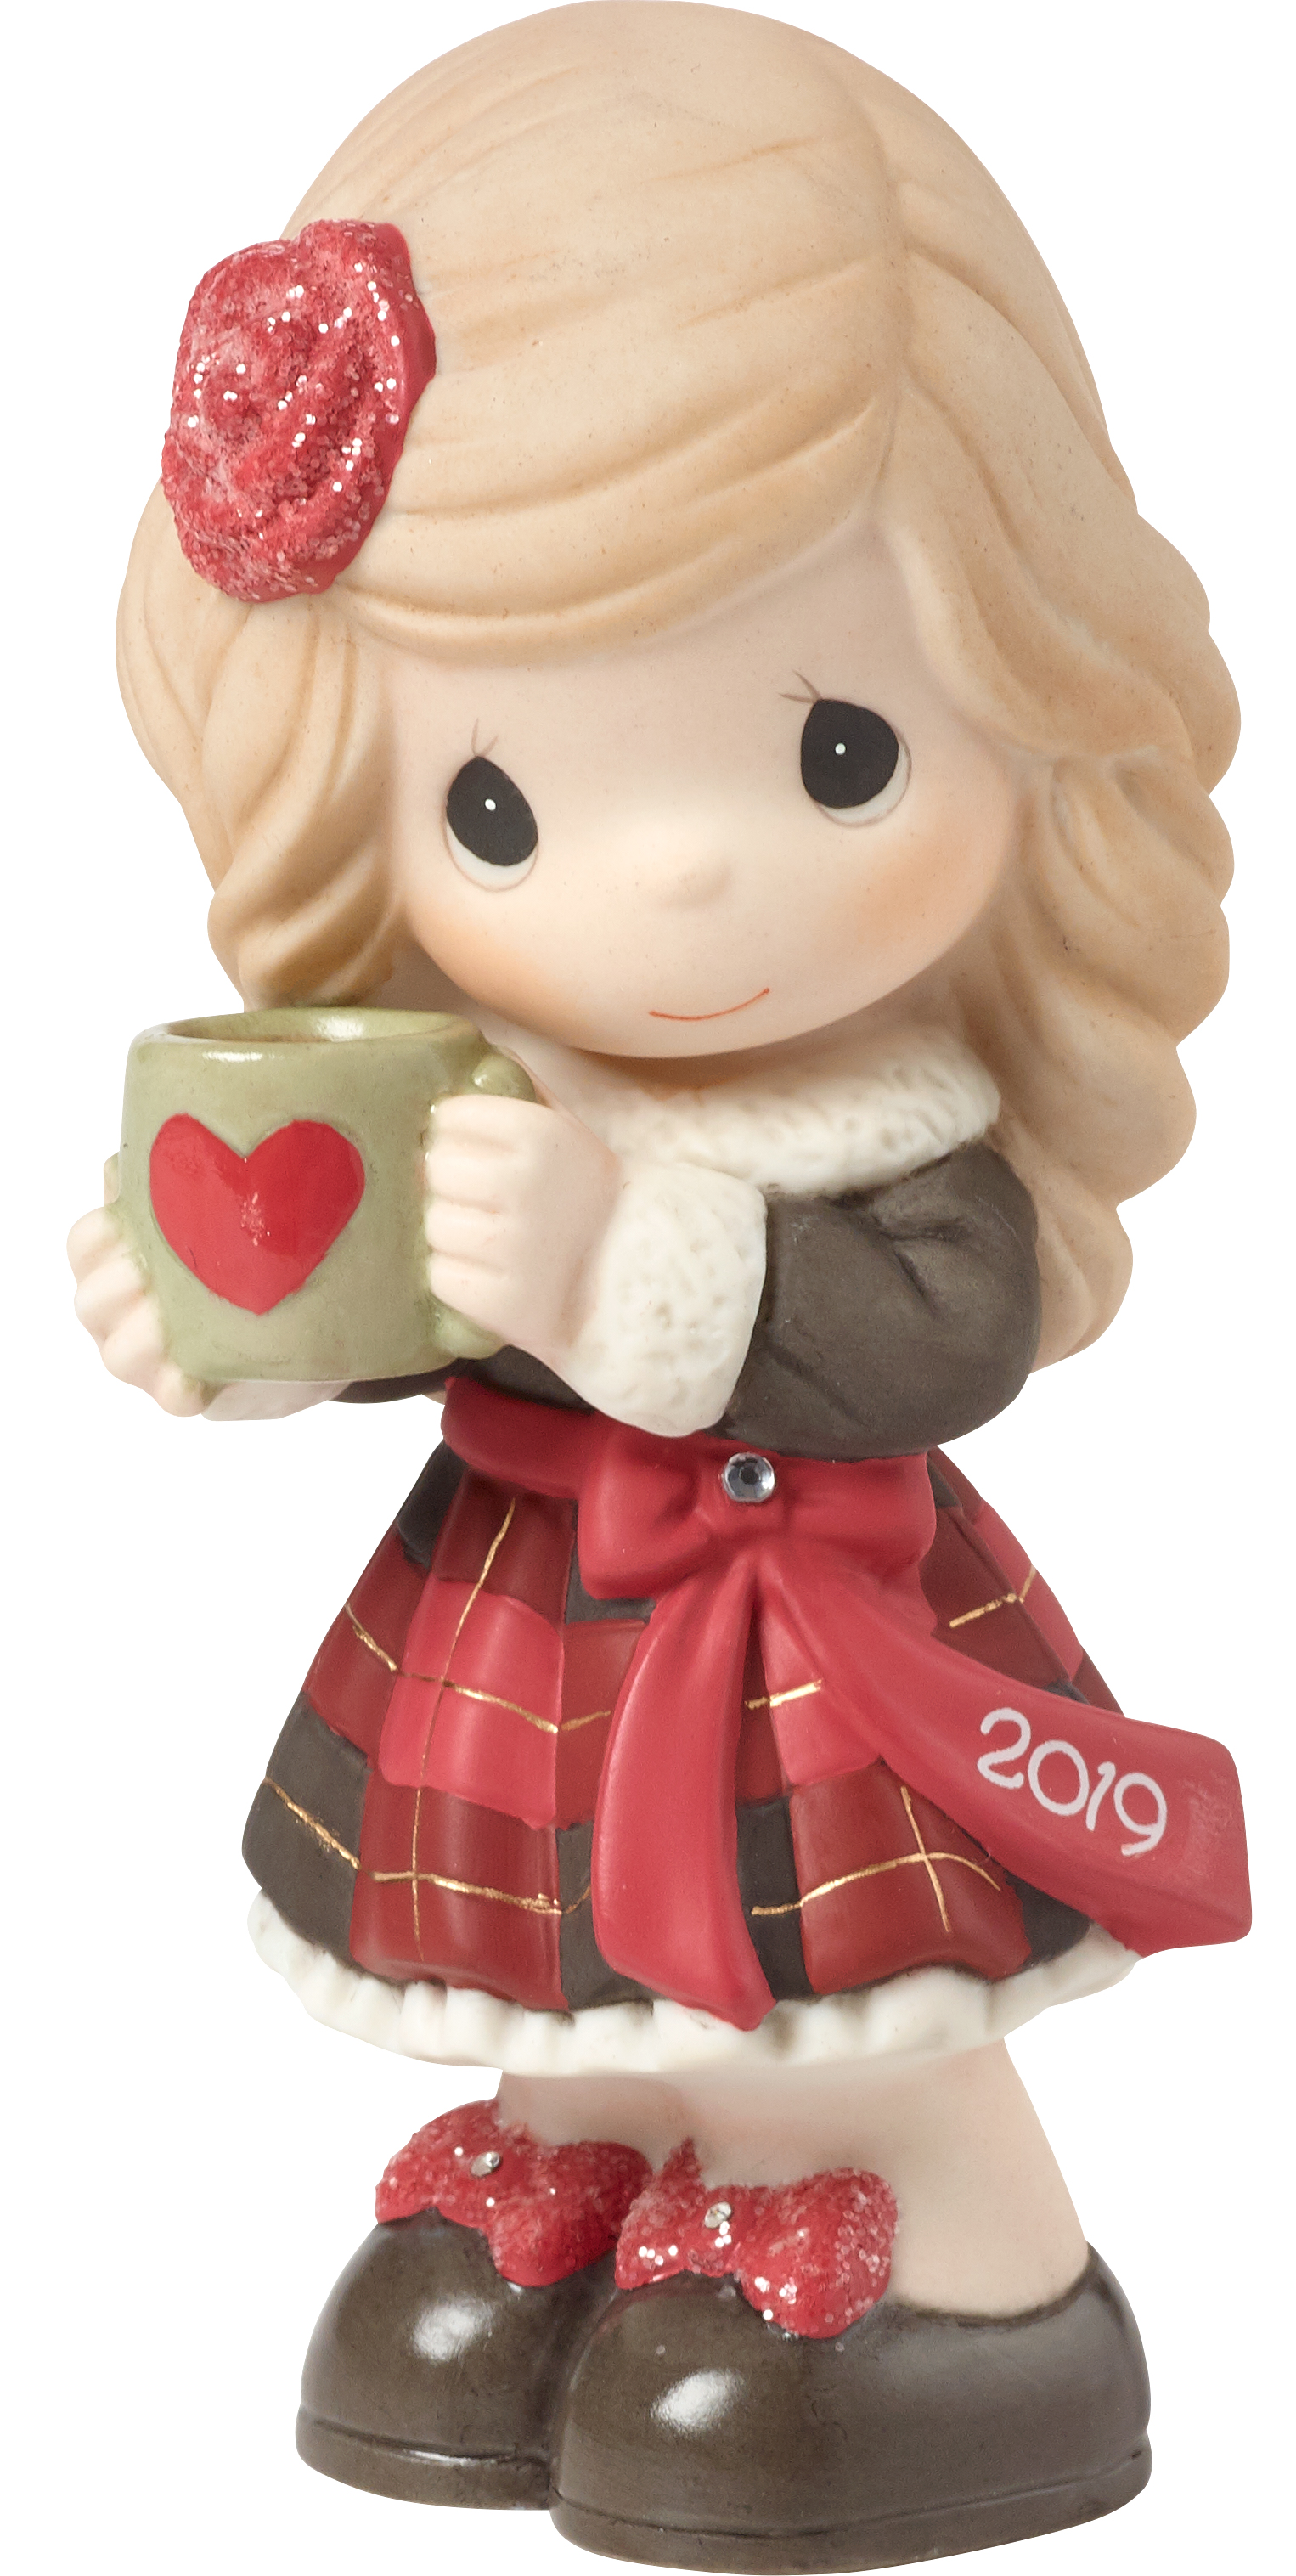 2019 Dated Figurine And Christmas Ornaments Are Here Precious Moments Co Inc